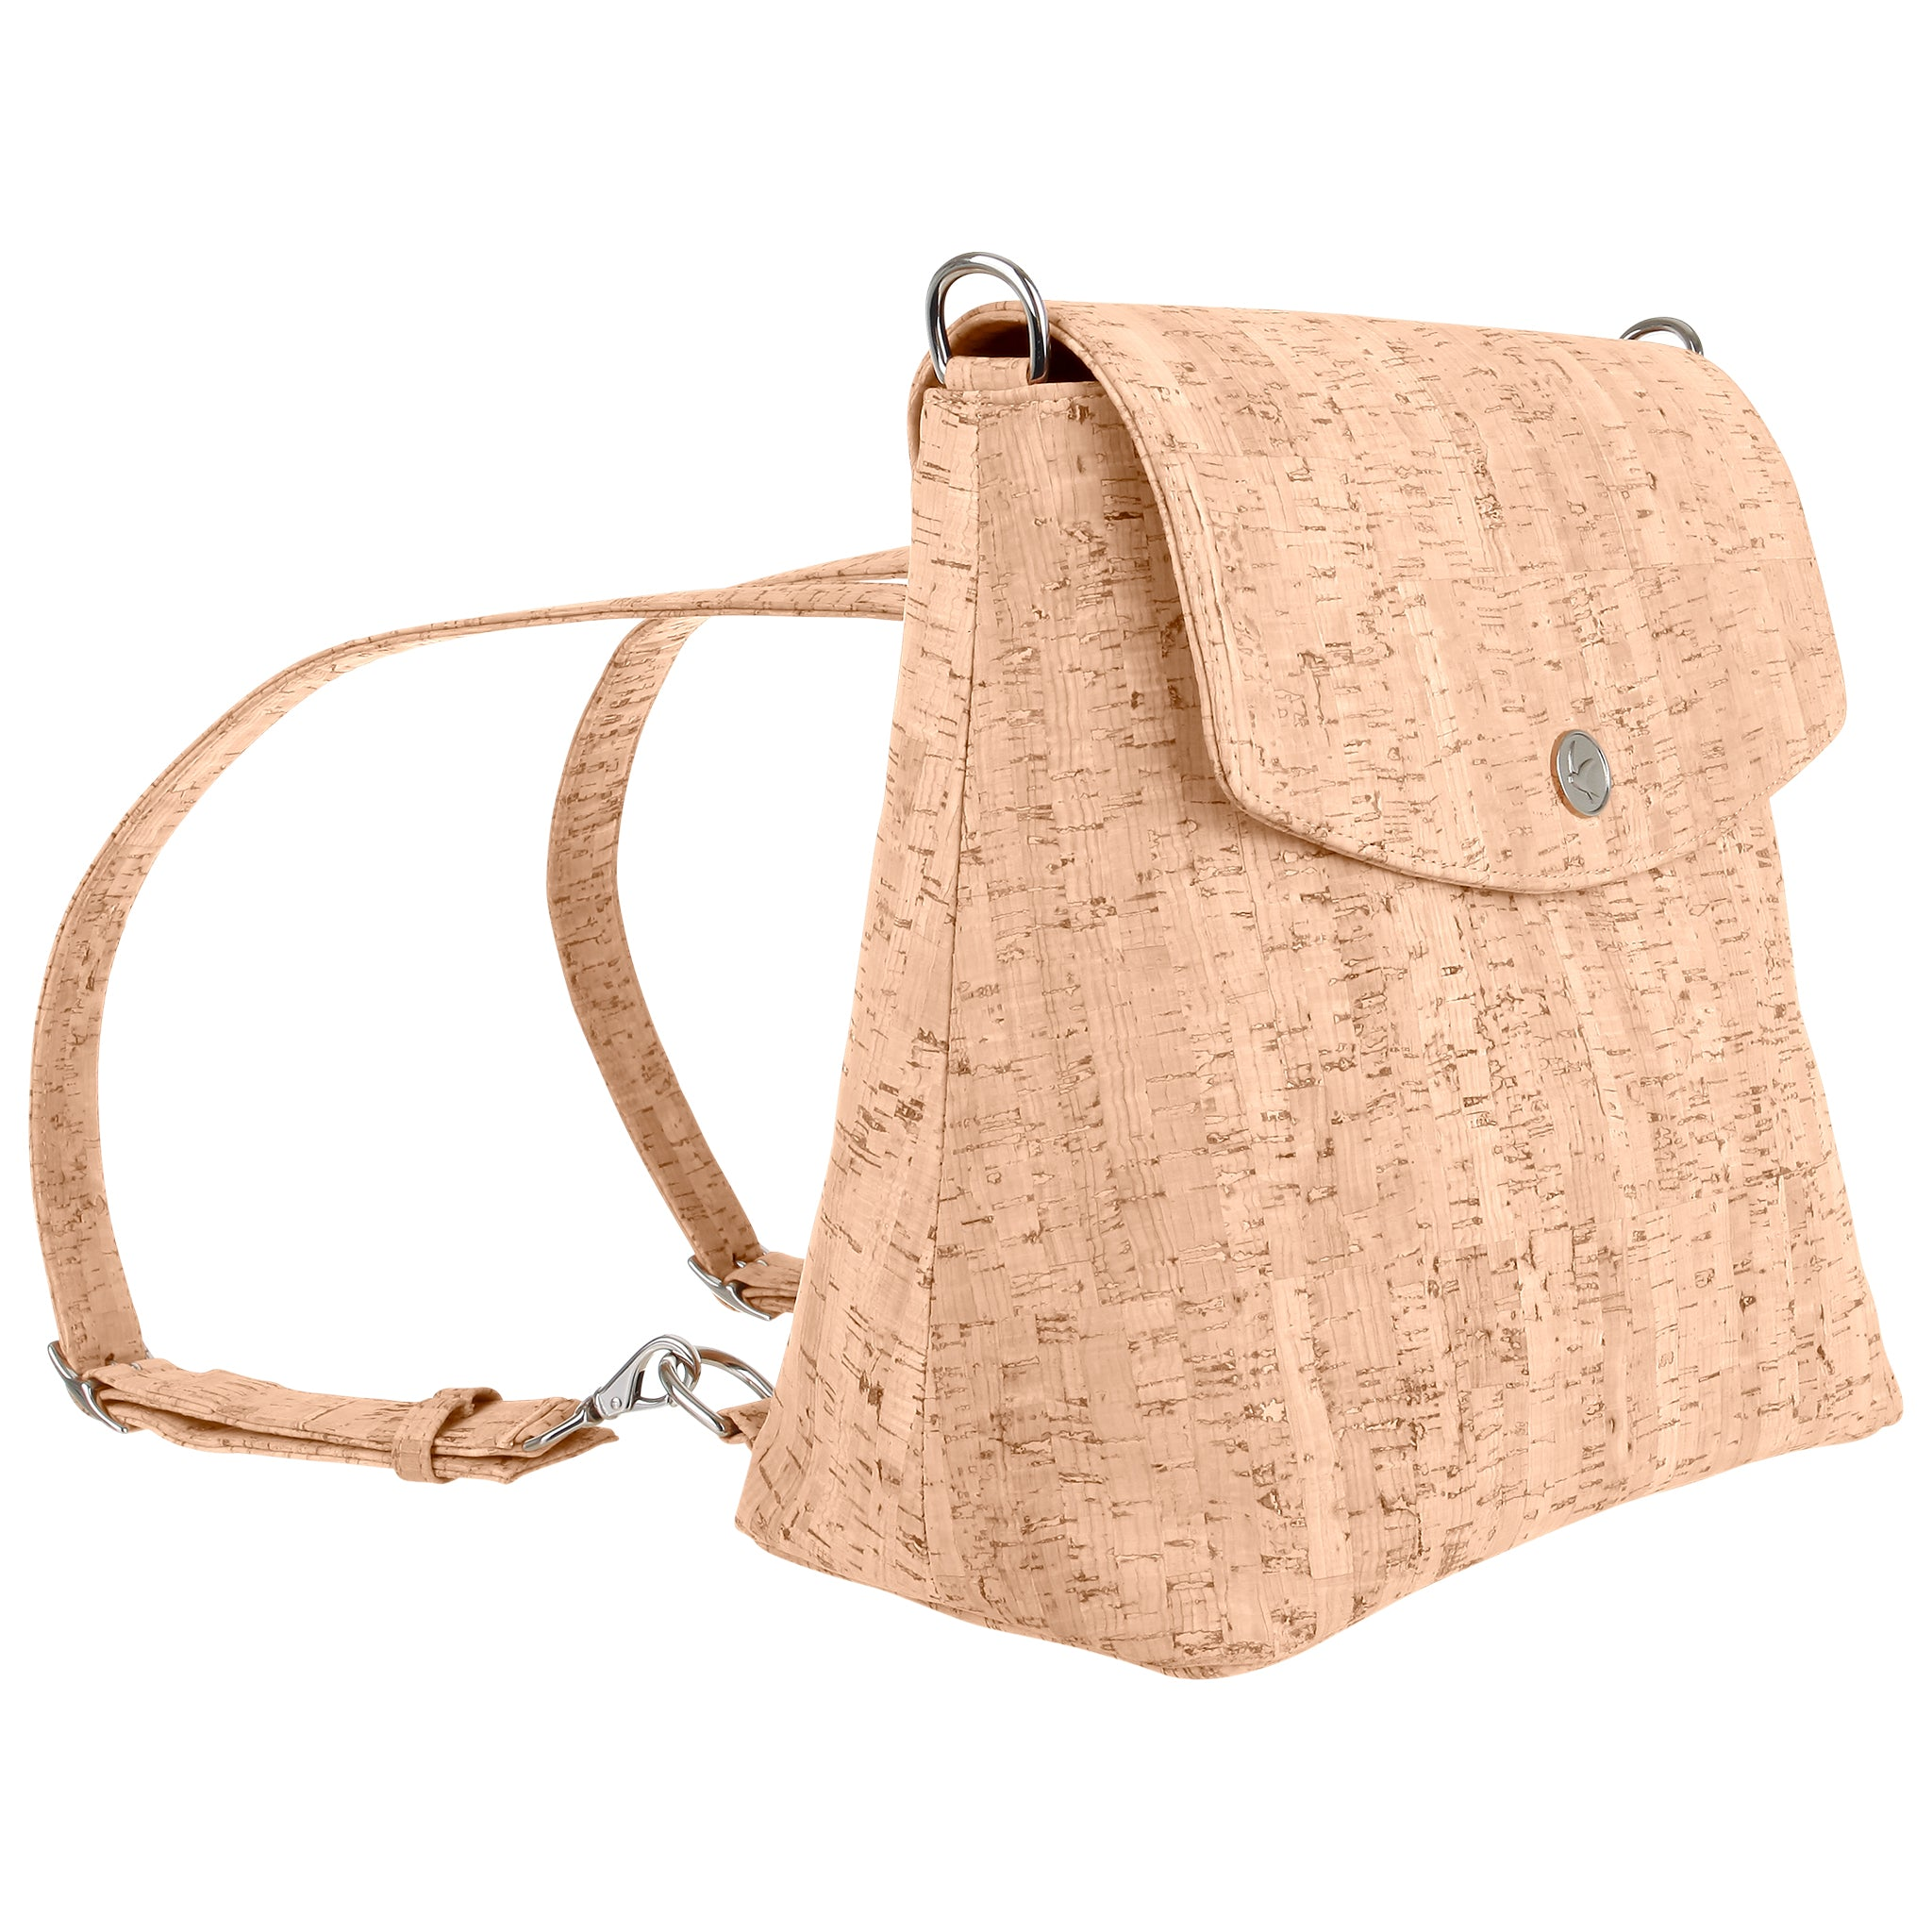 Svala vegan Gemma natural cork backpack purse